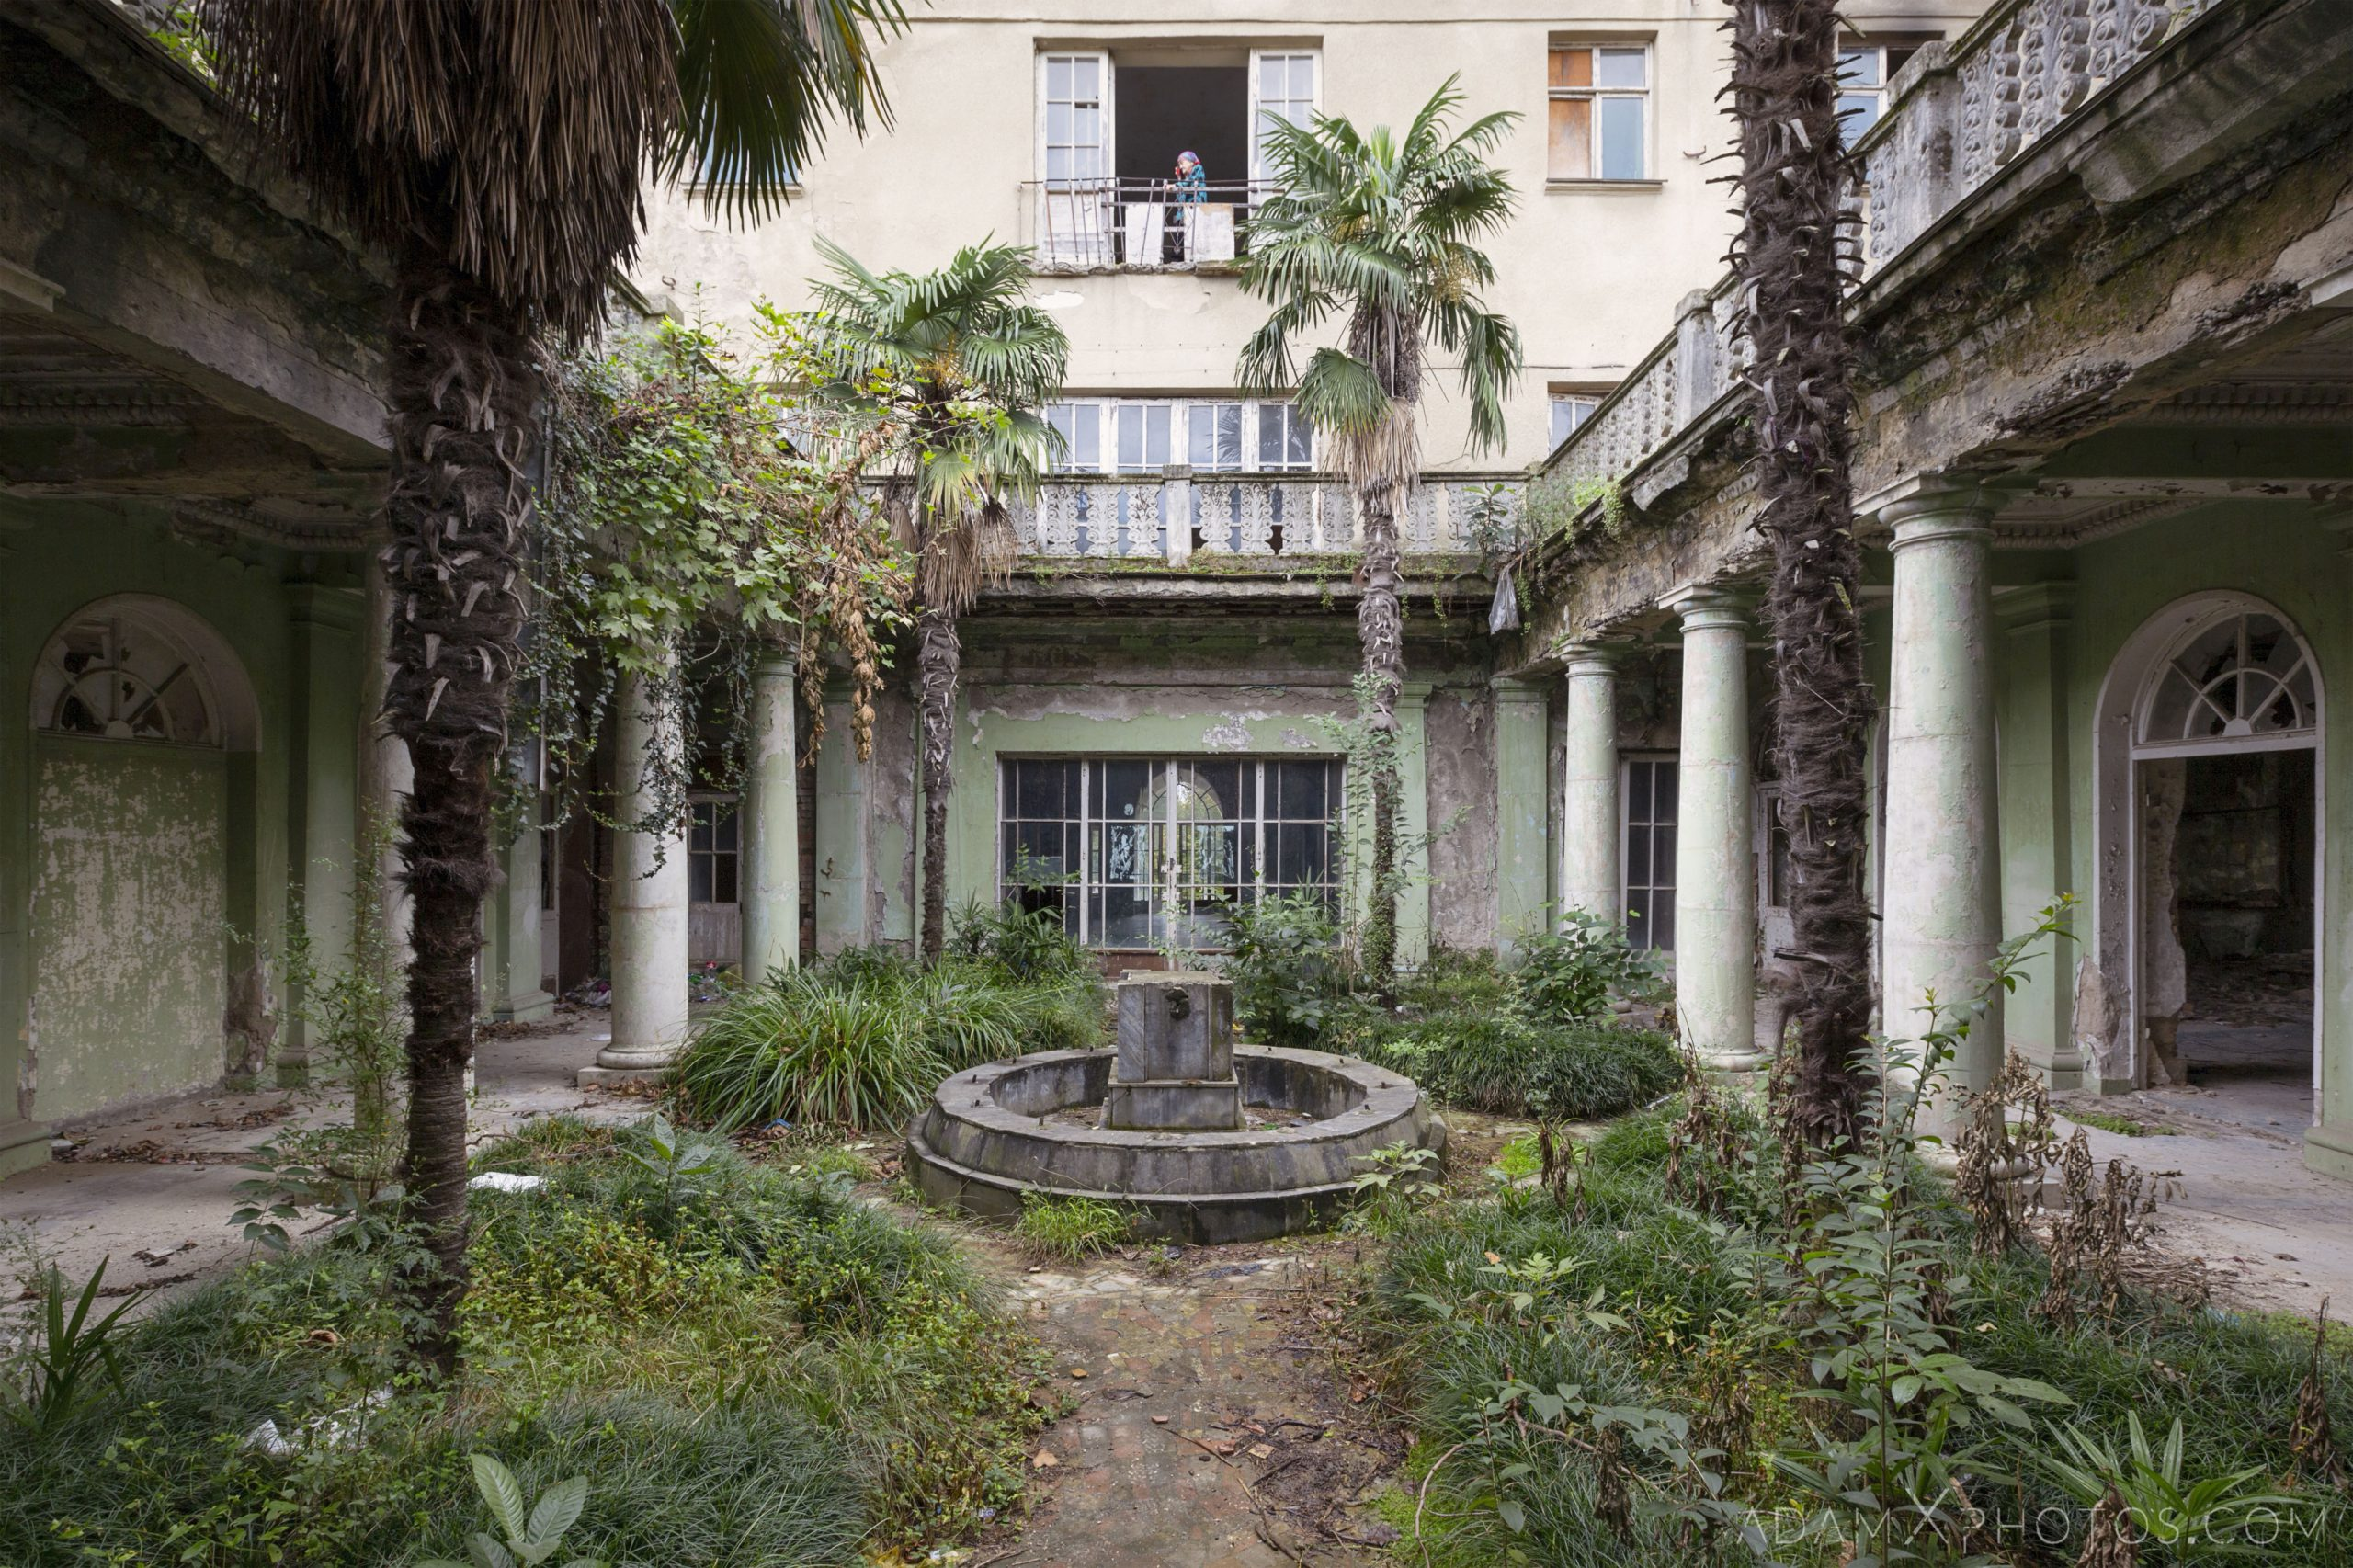 Garden fountain IDPs residents palm trees Green columns central courtyard peeling paint Hotel Tbilisi Tskaltubo Georgia Adam X Urbex Urban Exploration 2018 Abandoned Access History decay ruins lost forgotten derelict location creepy haunting eerie security